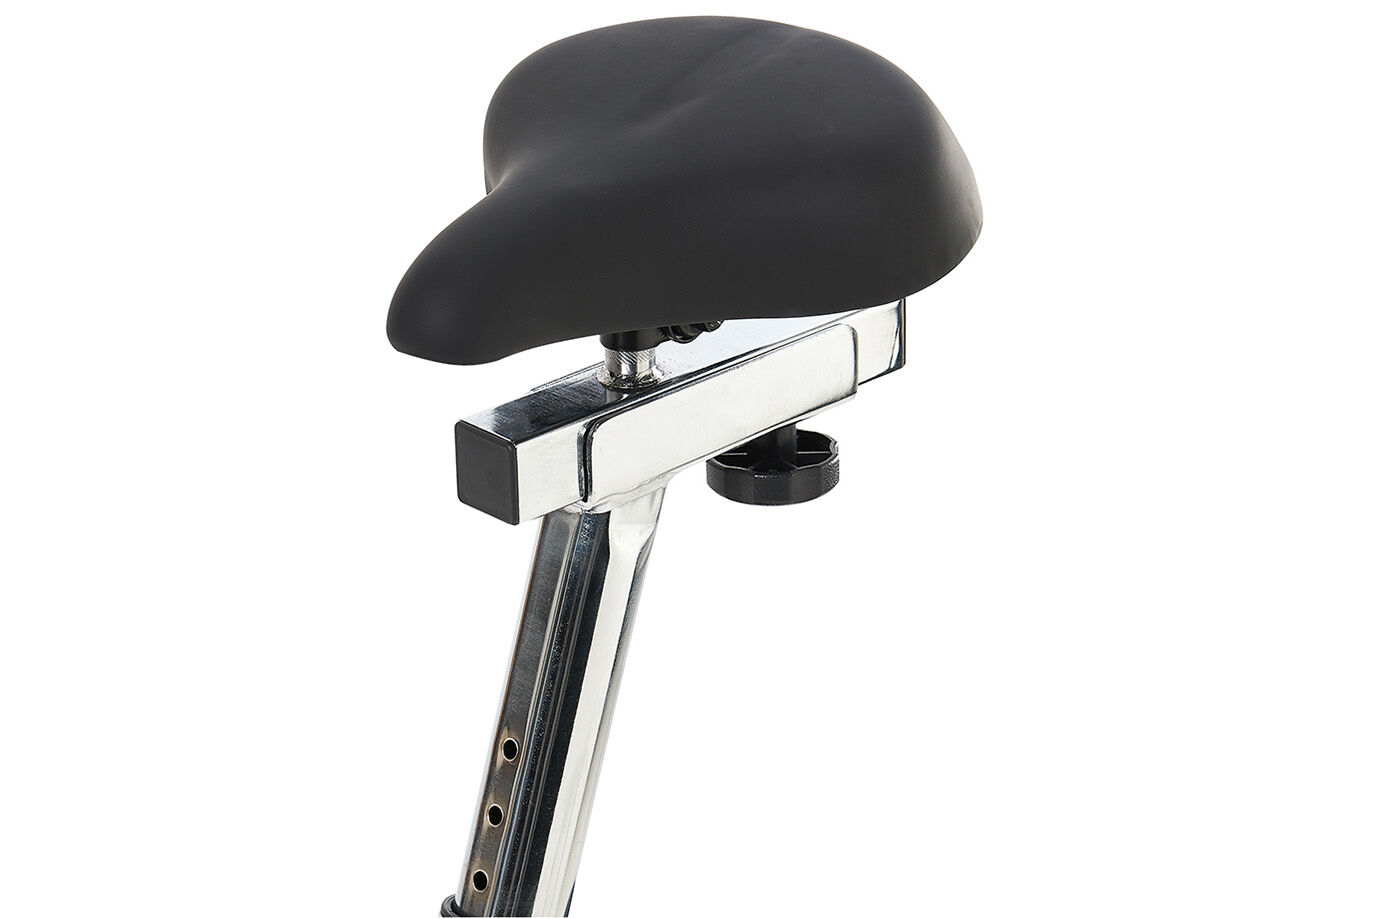 Comfortable, Padded Used Exercise Bike Seat